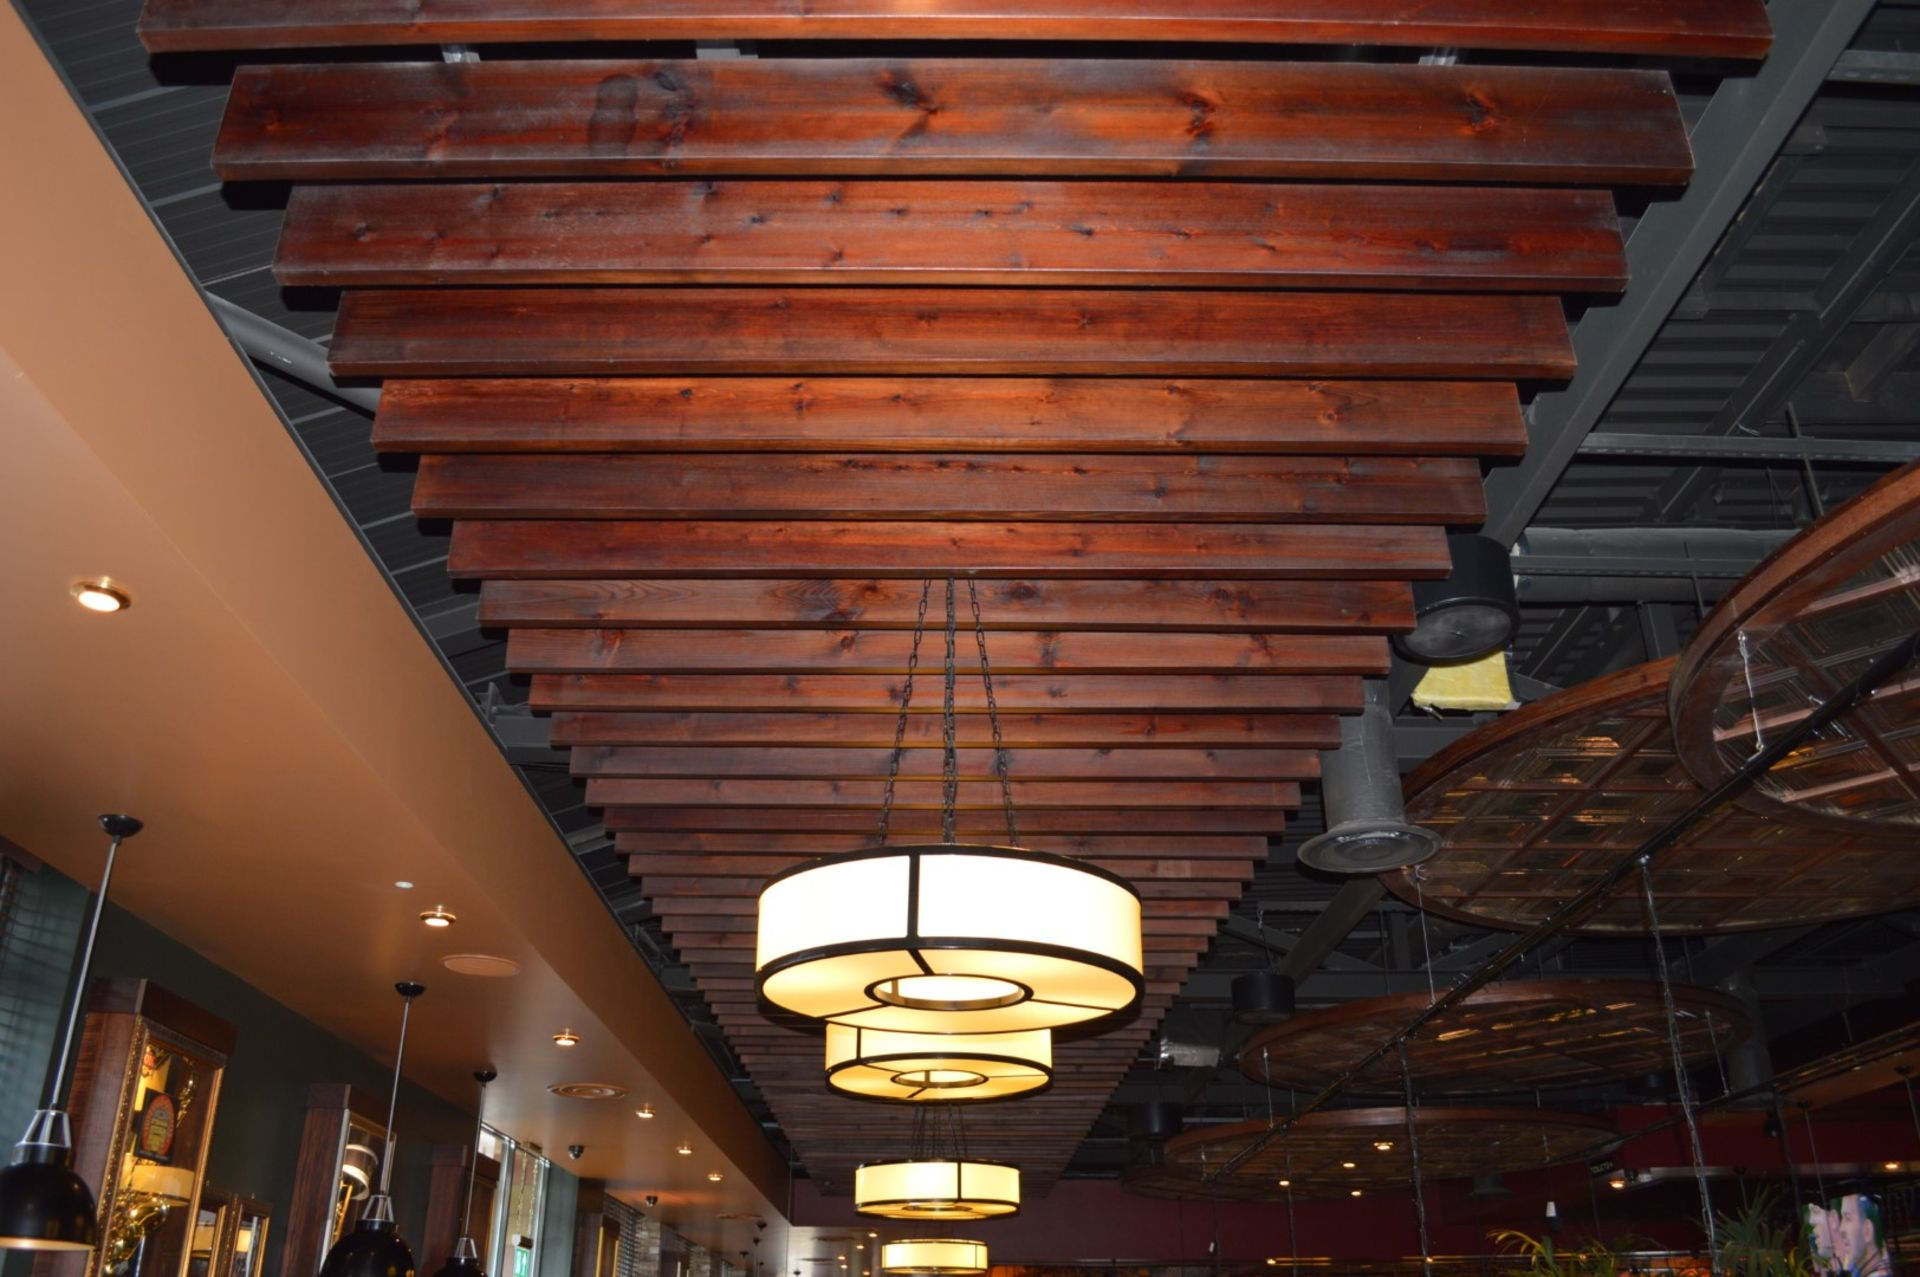 Lot 54 - 1 x Bespoke Stained Wood Ceiling Feature - Wooden Beams With Steel Mounting Bracket - Approx 40ft in